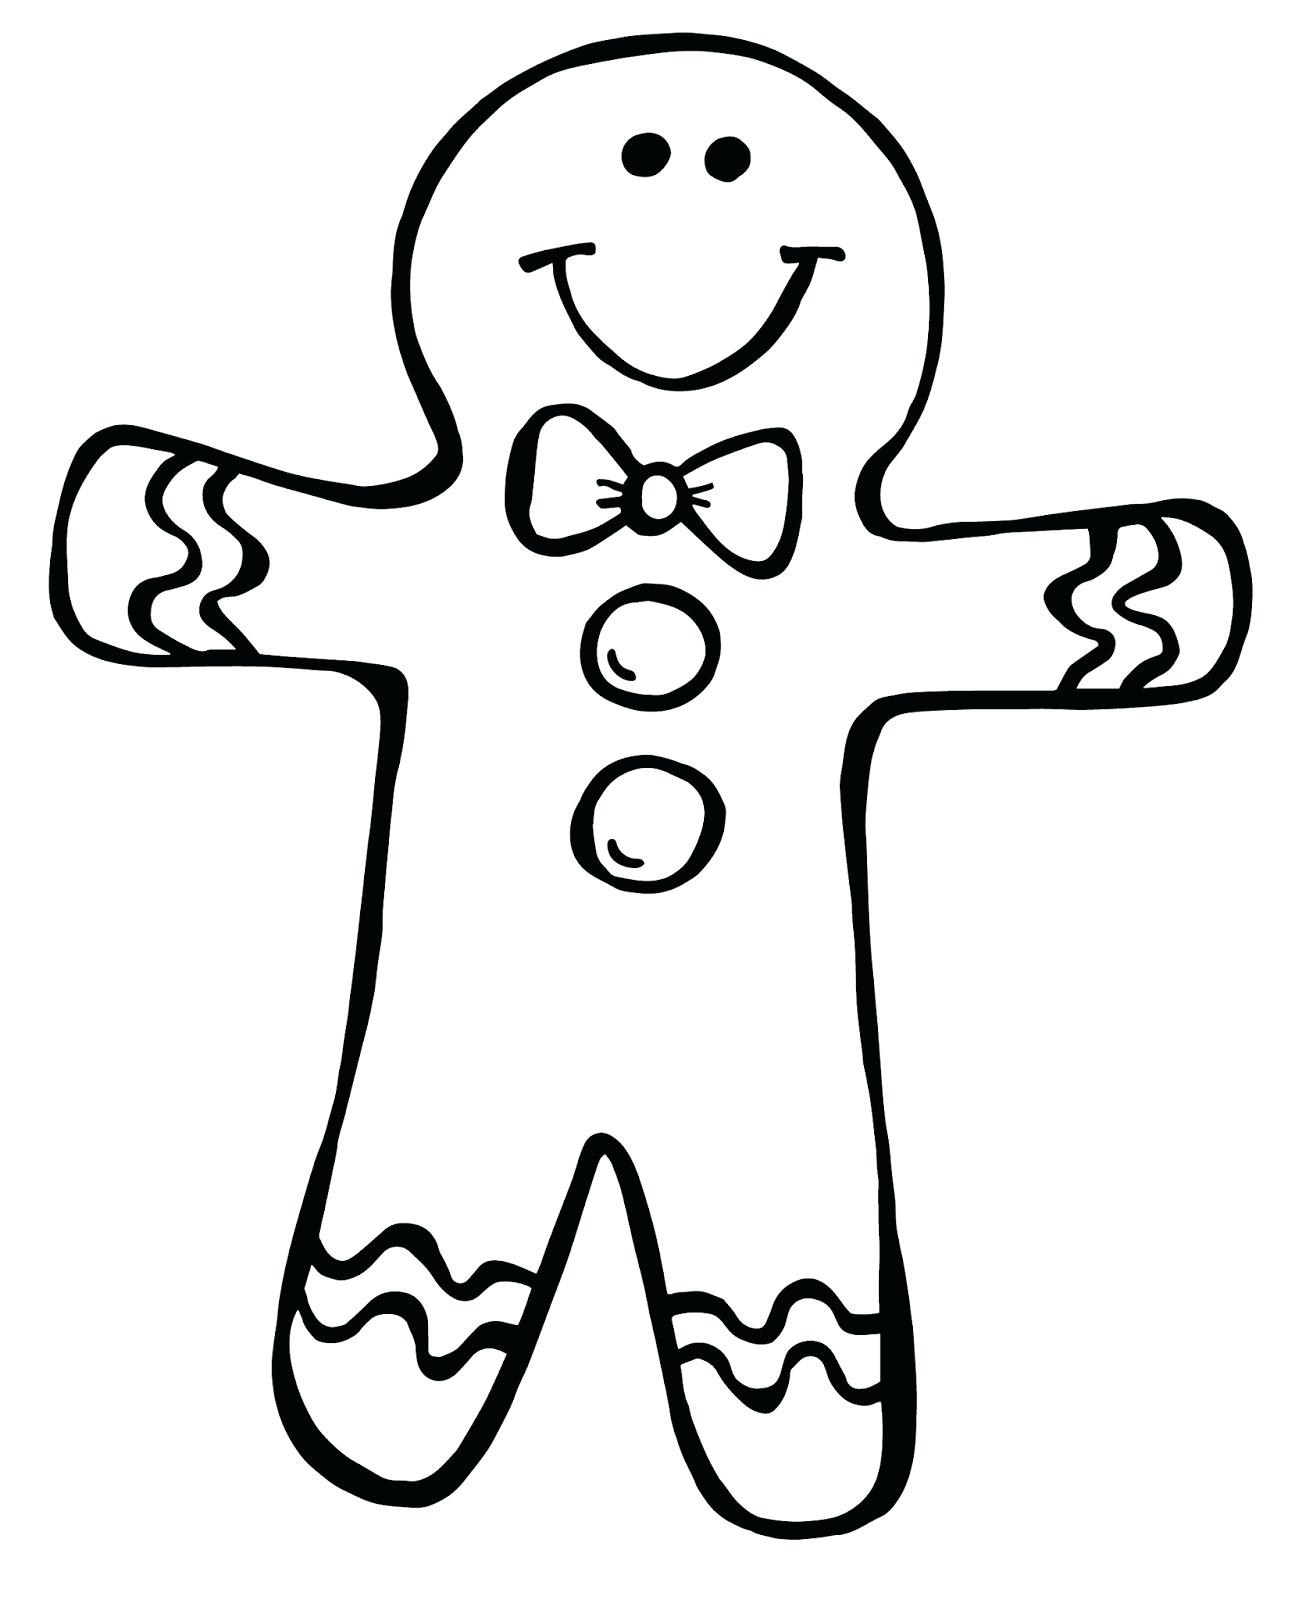 Collection of Gingerbread man clipart.